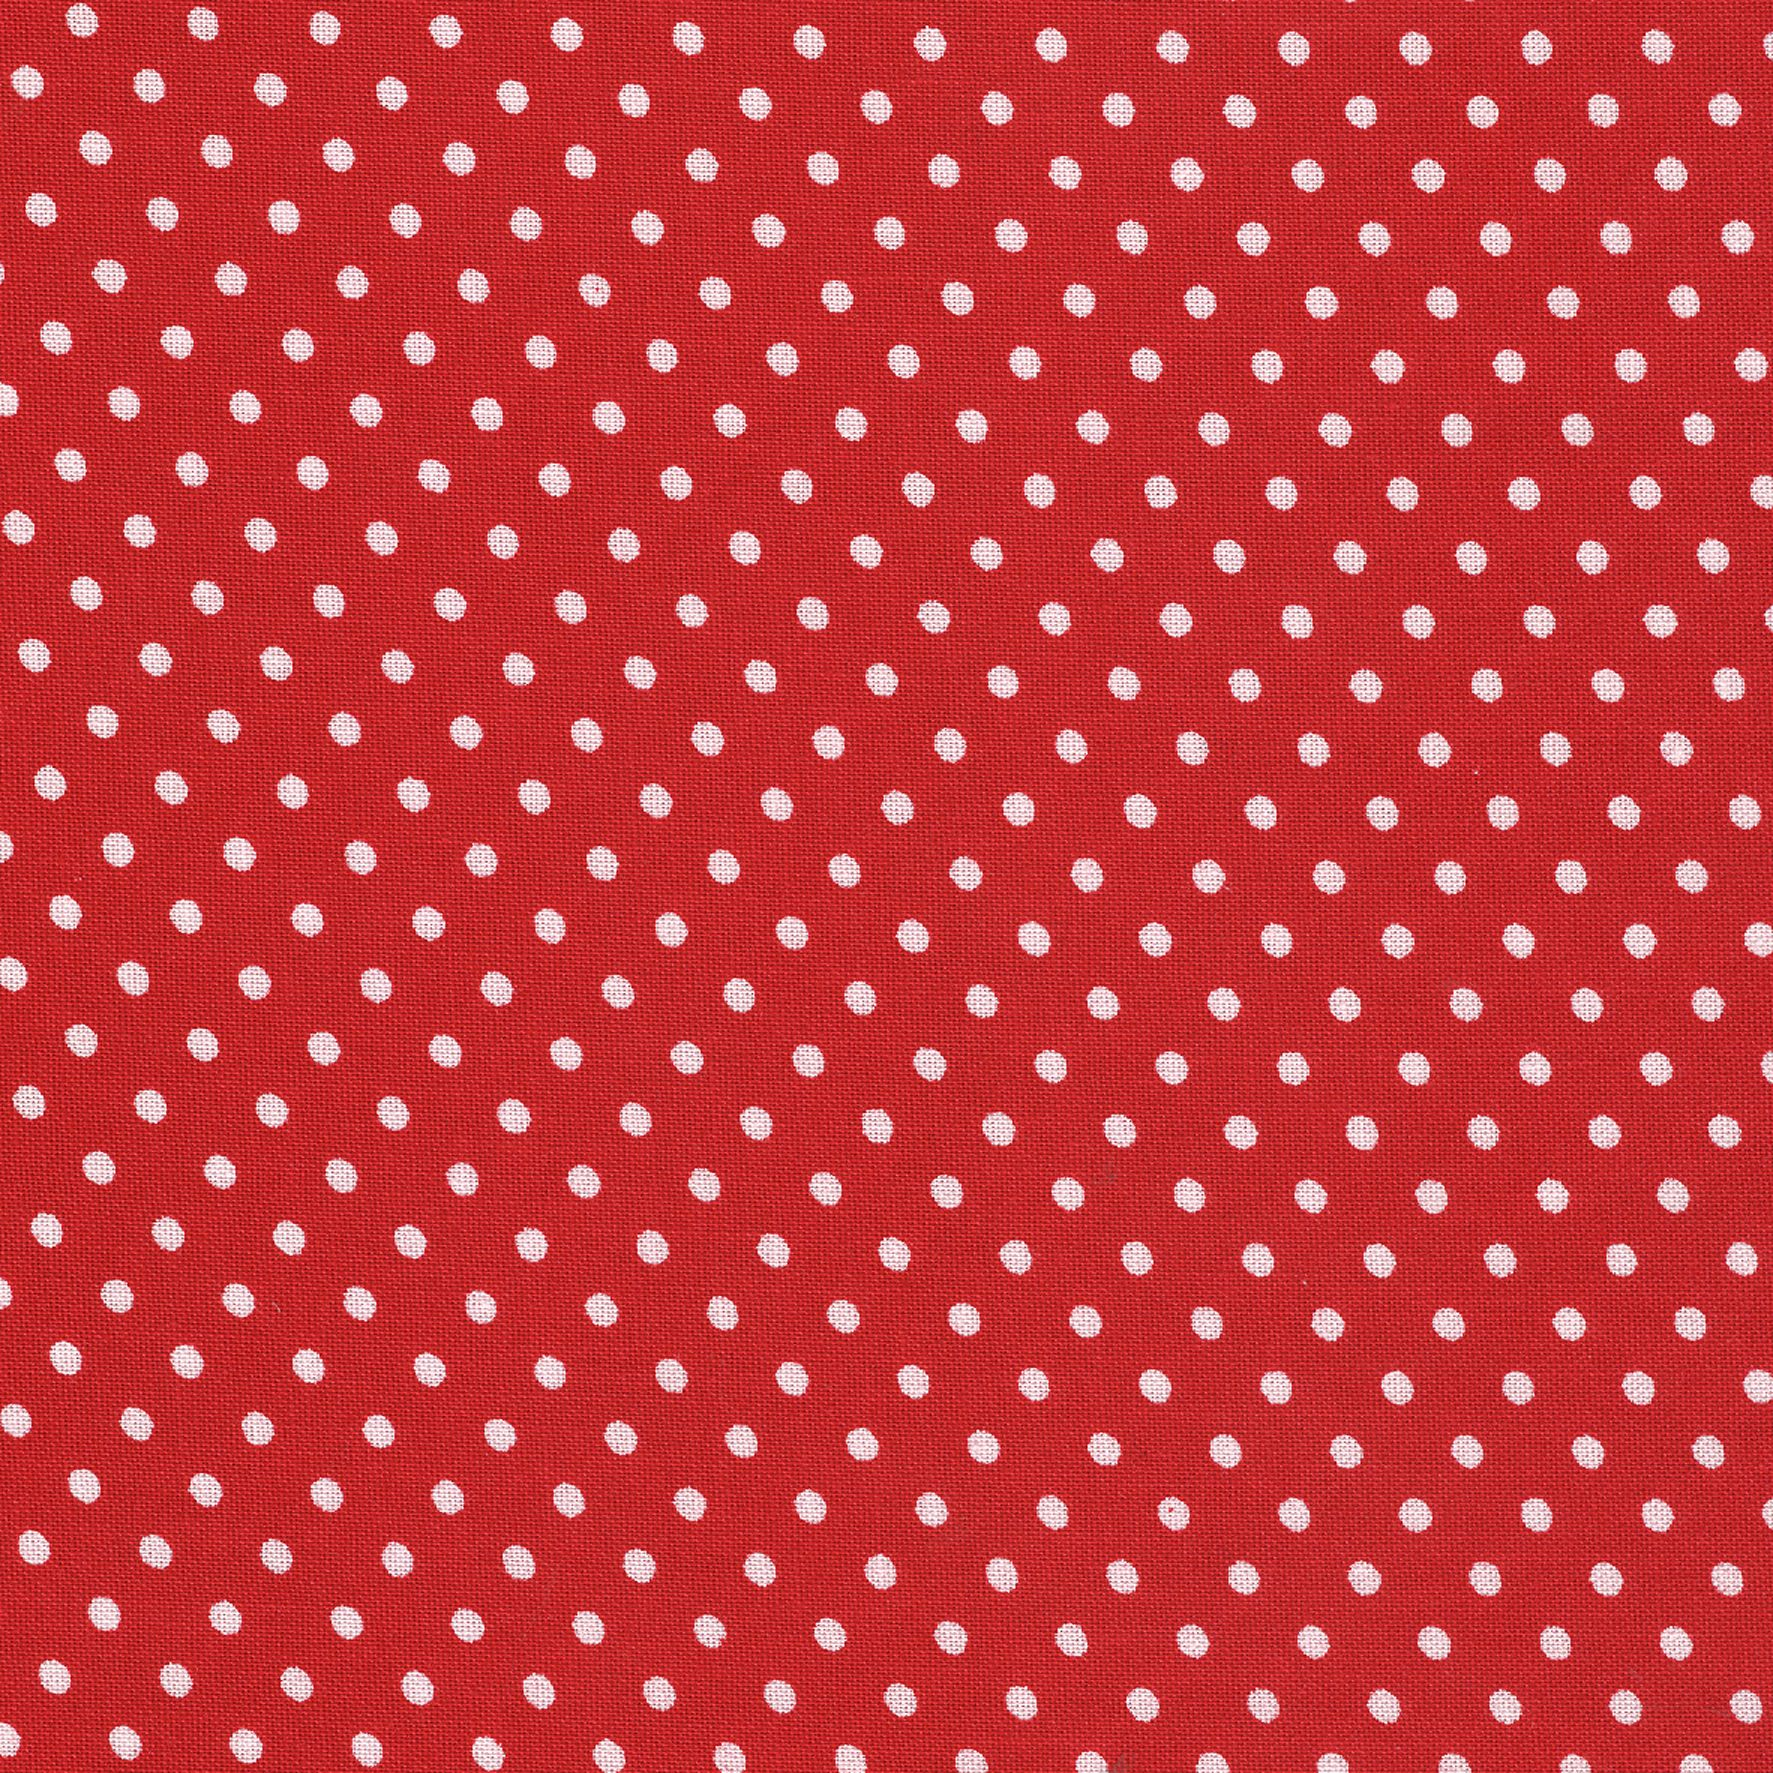 SHASON TEXTILE (3 Yards cut) 100% COTTON PRINT QUILTING FABRIC, RED / WHITE MED DOTS